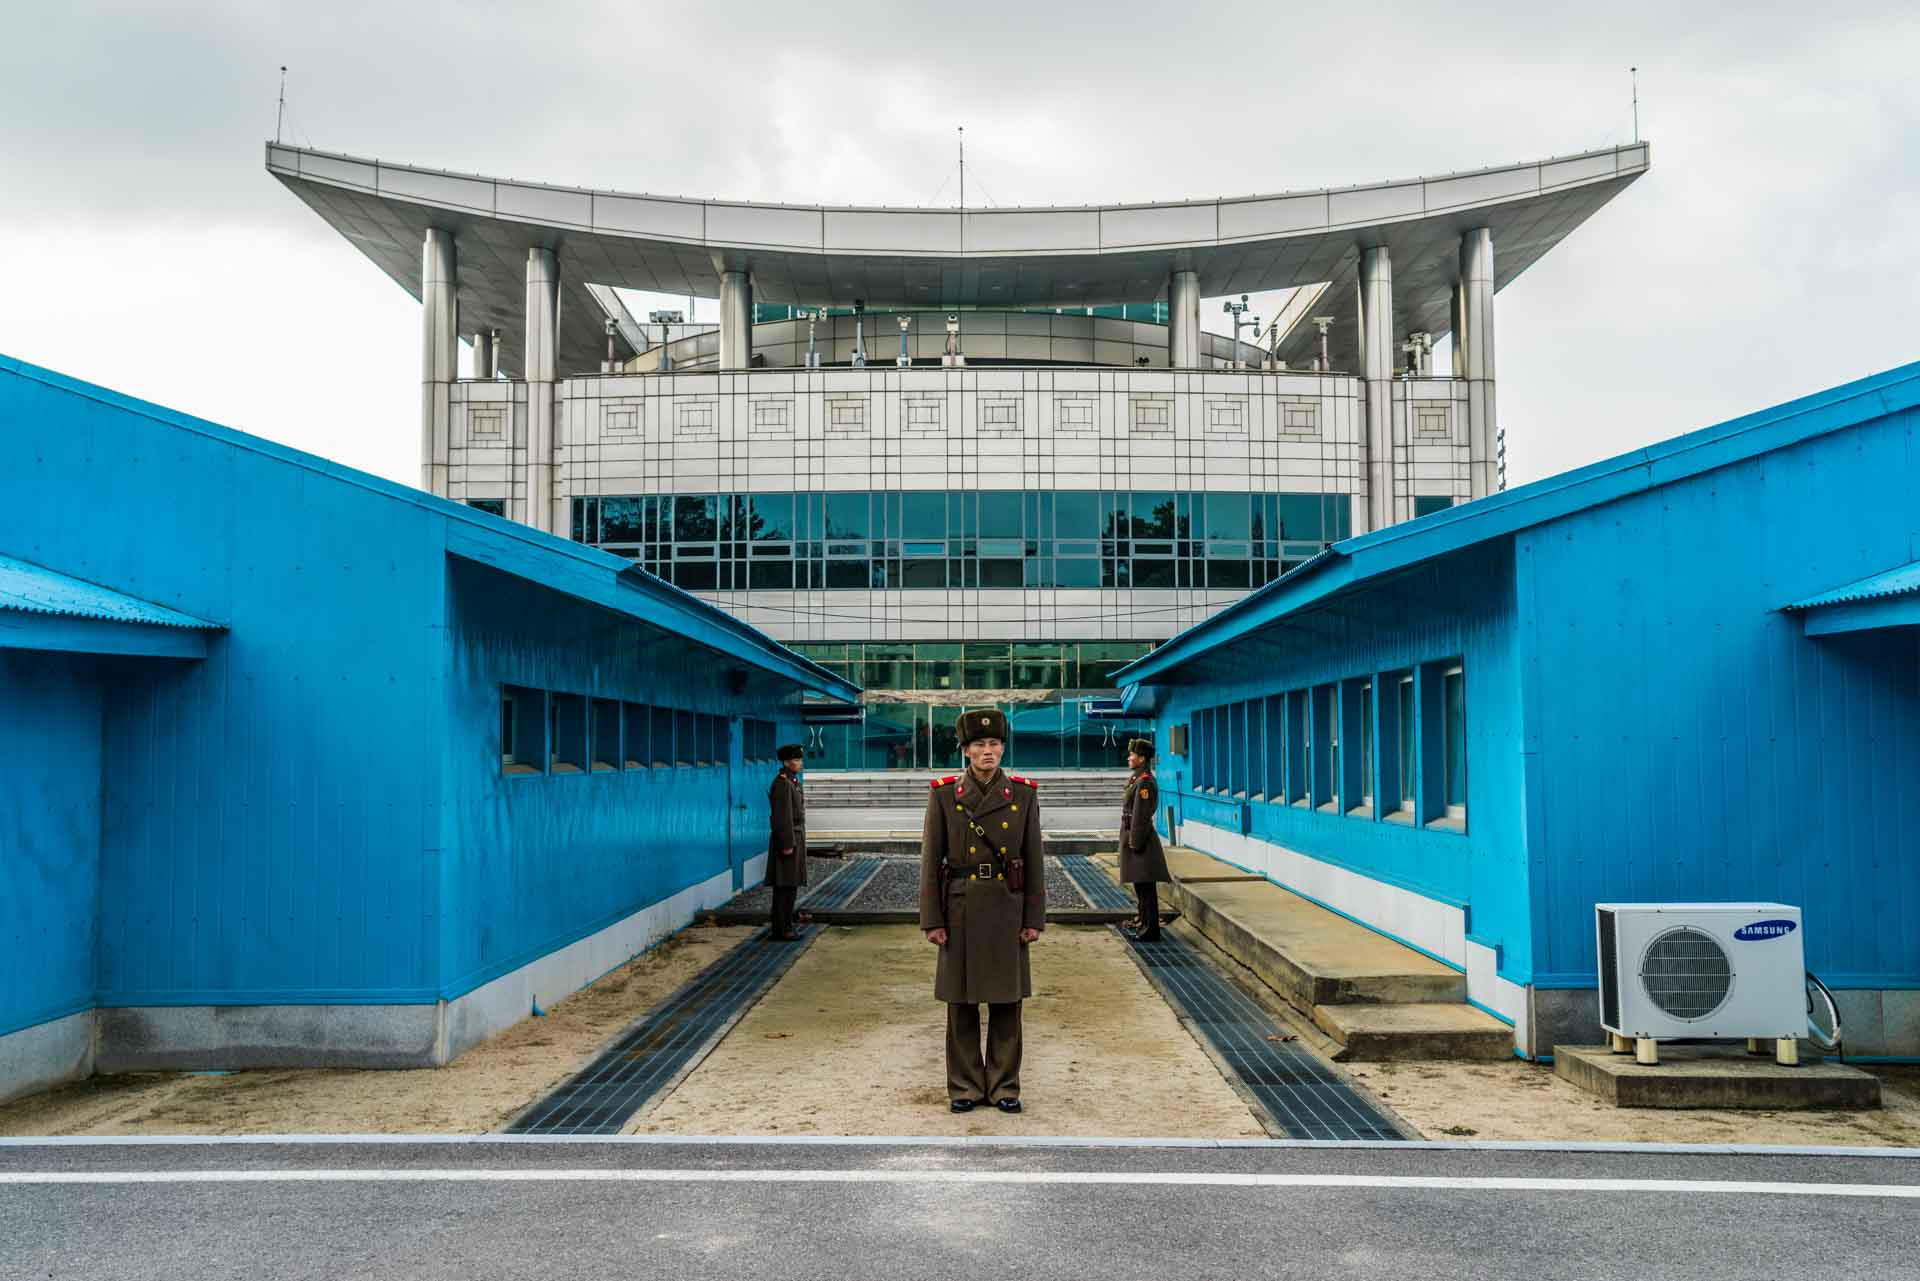 A Red Superhero in North Korea Enrico Pescantini DMZ 38 parallel